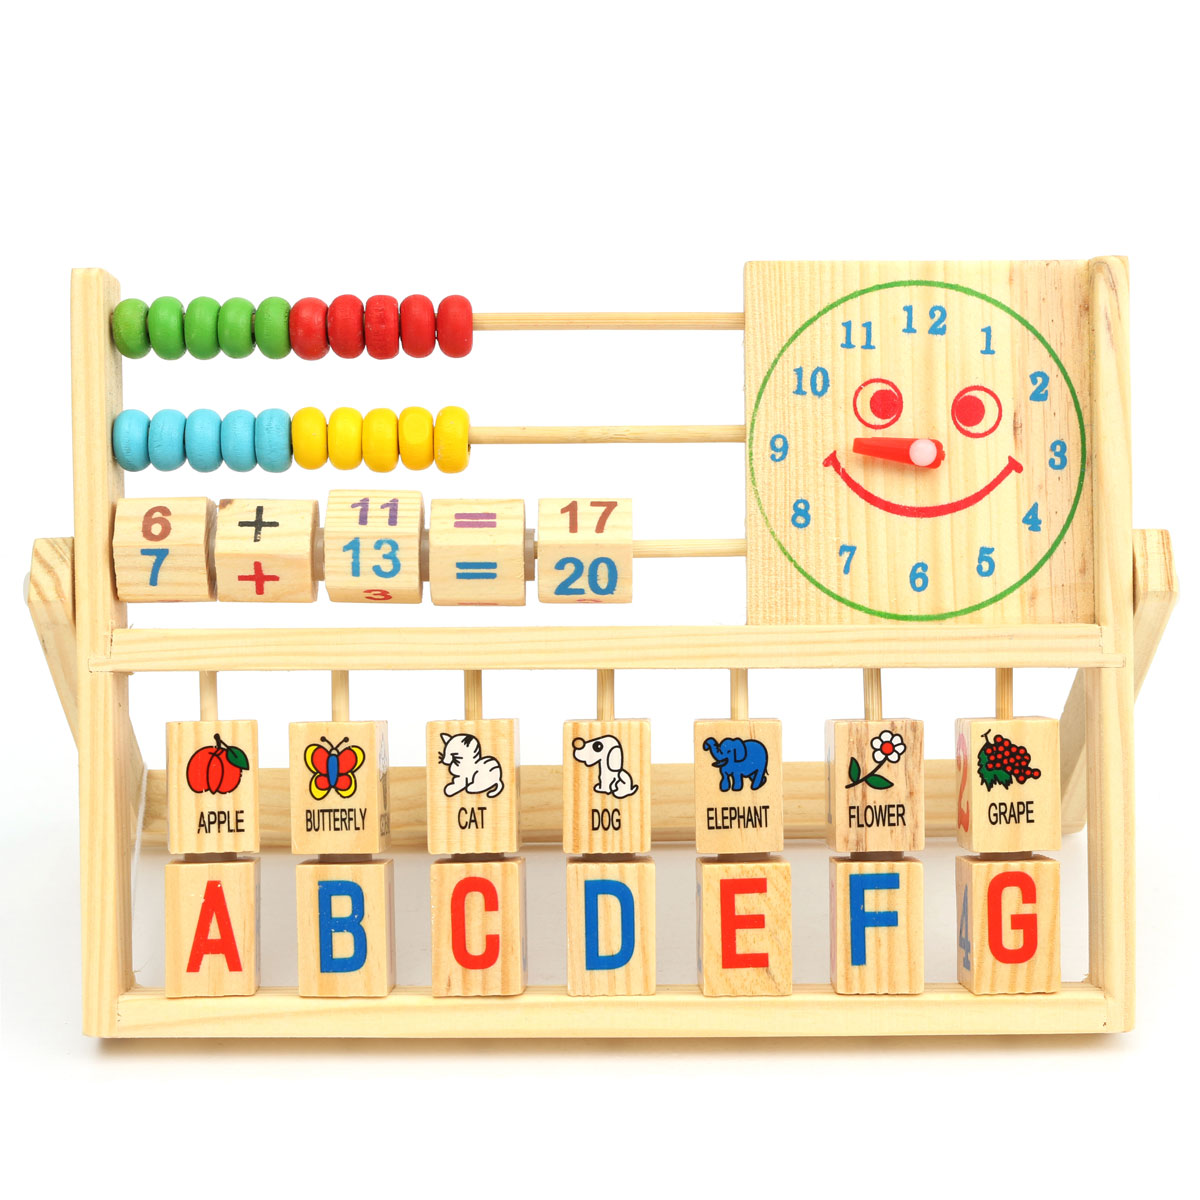 10 rows kids learning counting math developmental versatile wooden